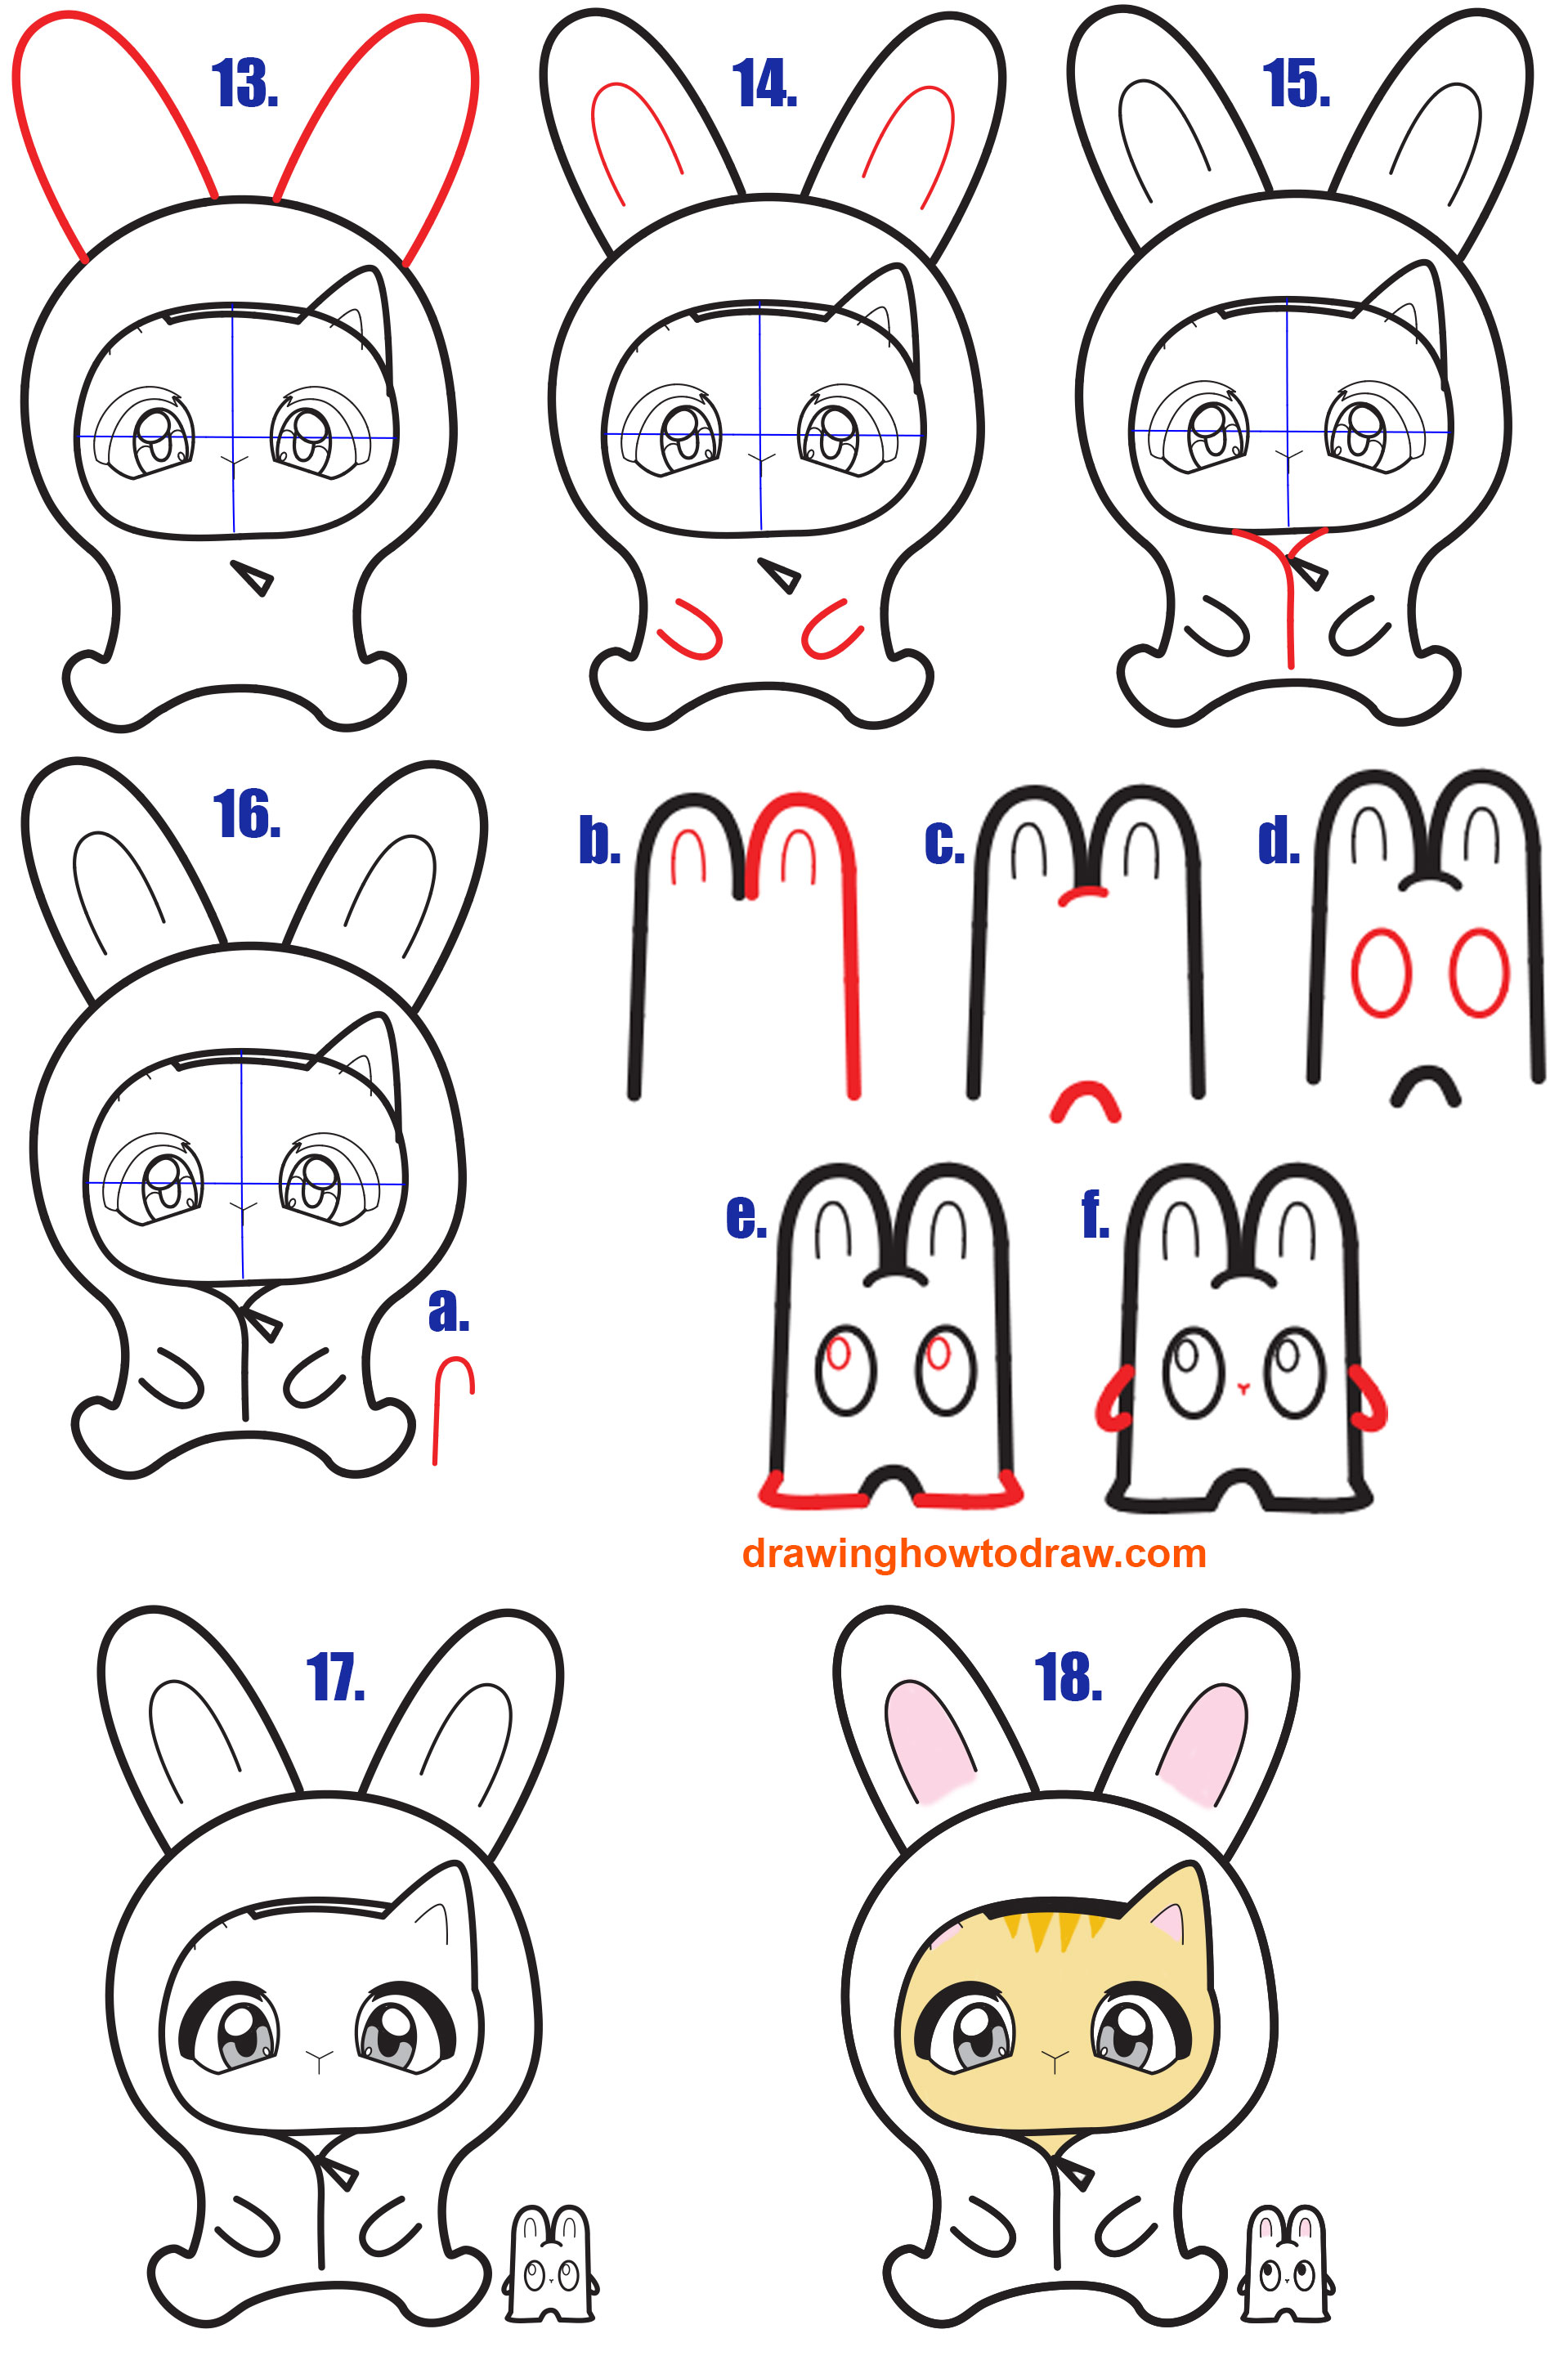 How To Draw A Chibi Kitten In A Bunny Onesie Costume Easy Step By